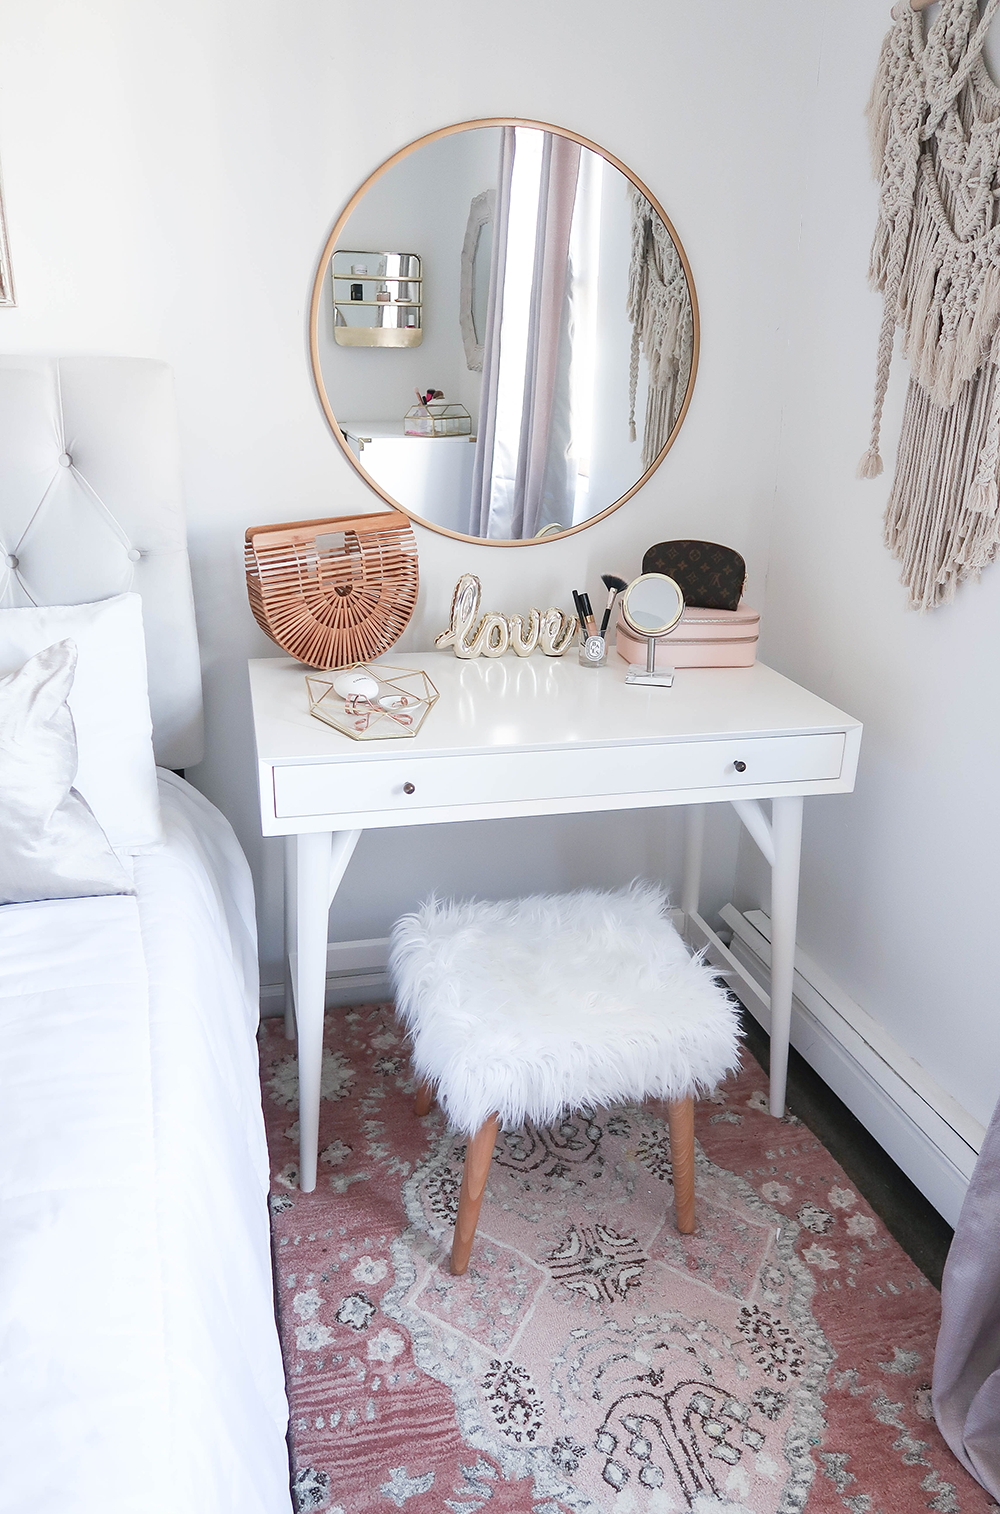 Styling A Vanity In A Small Space | Small vanity, Bedroom small and ...